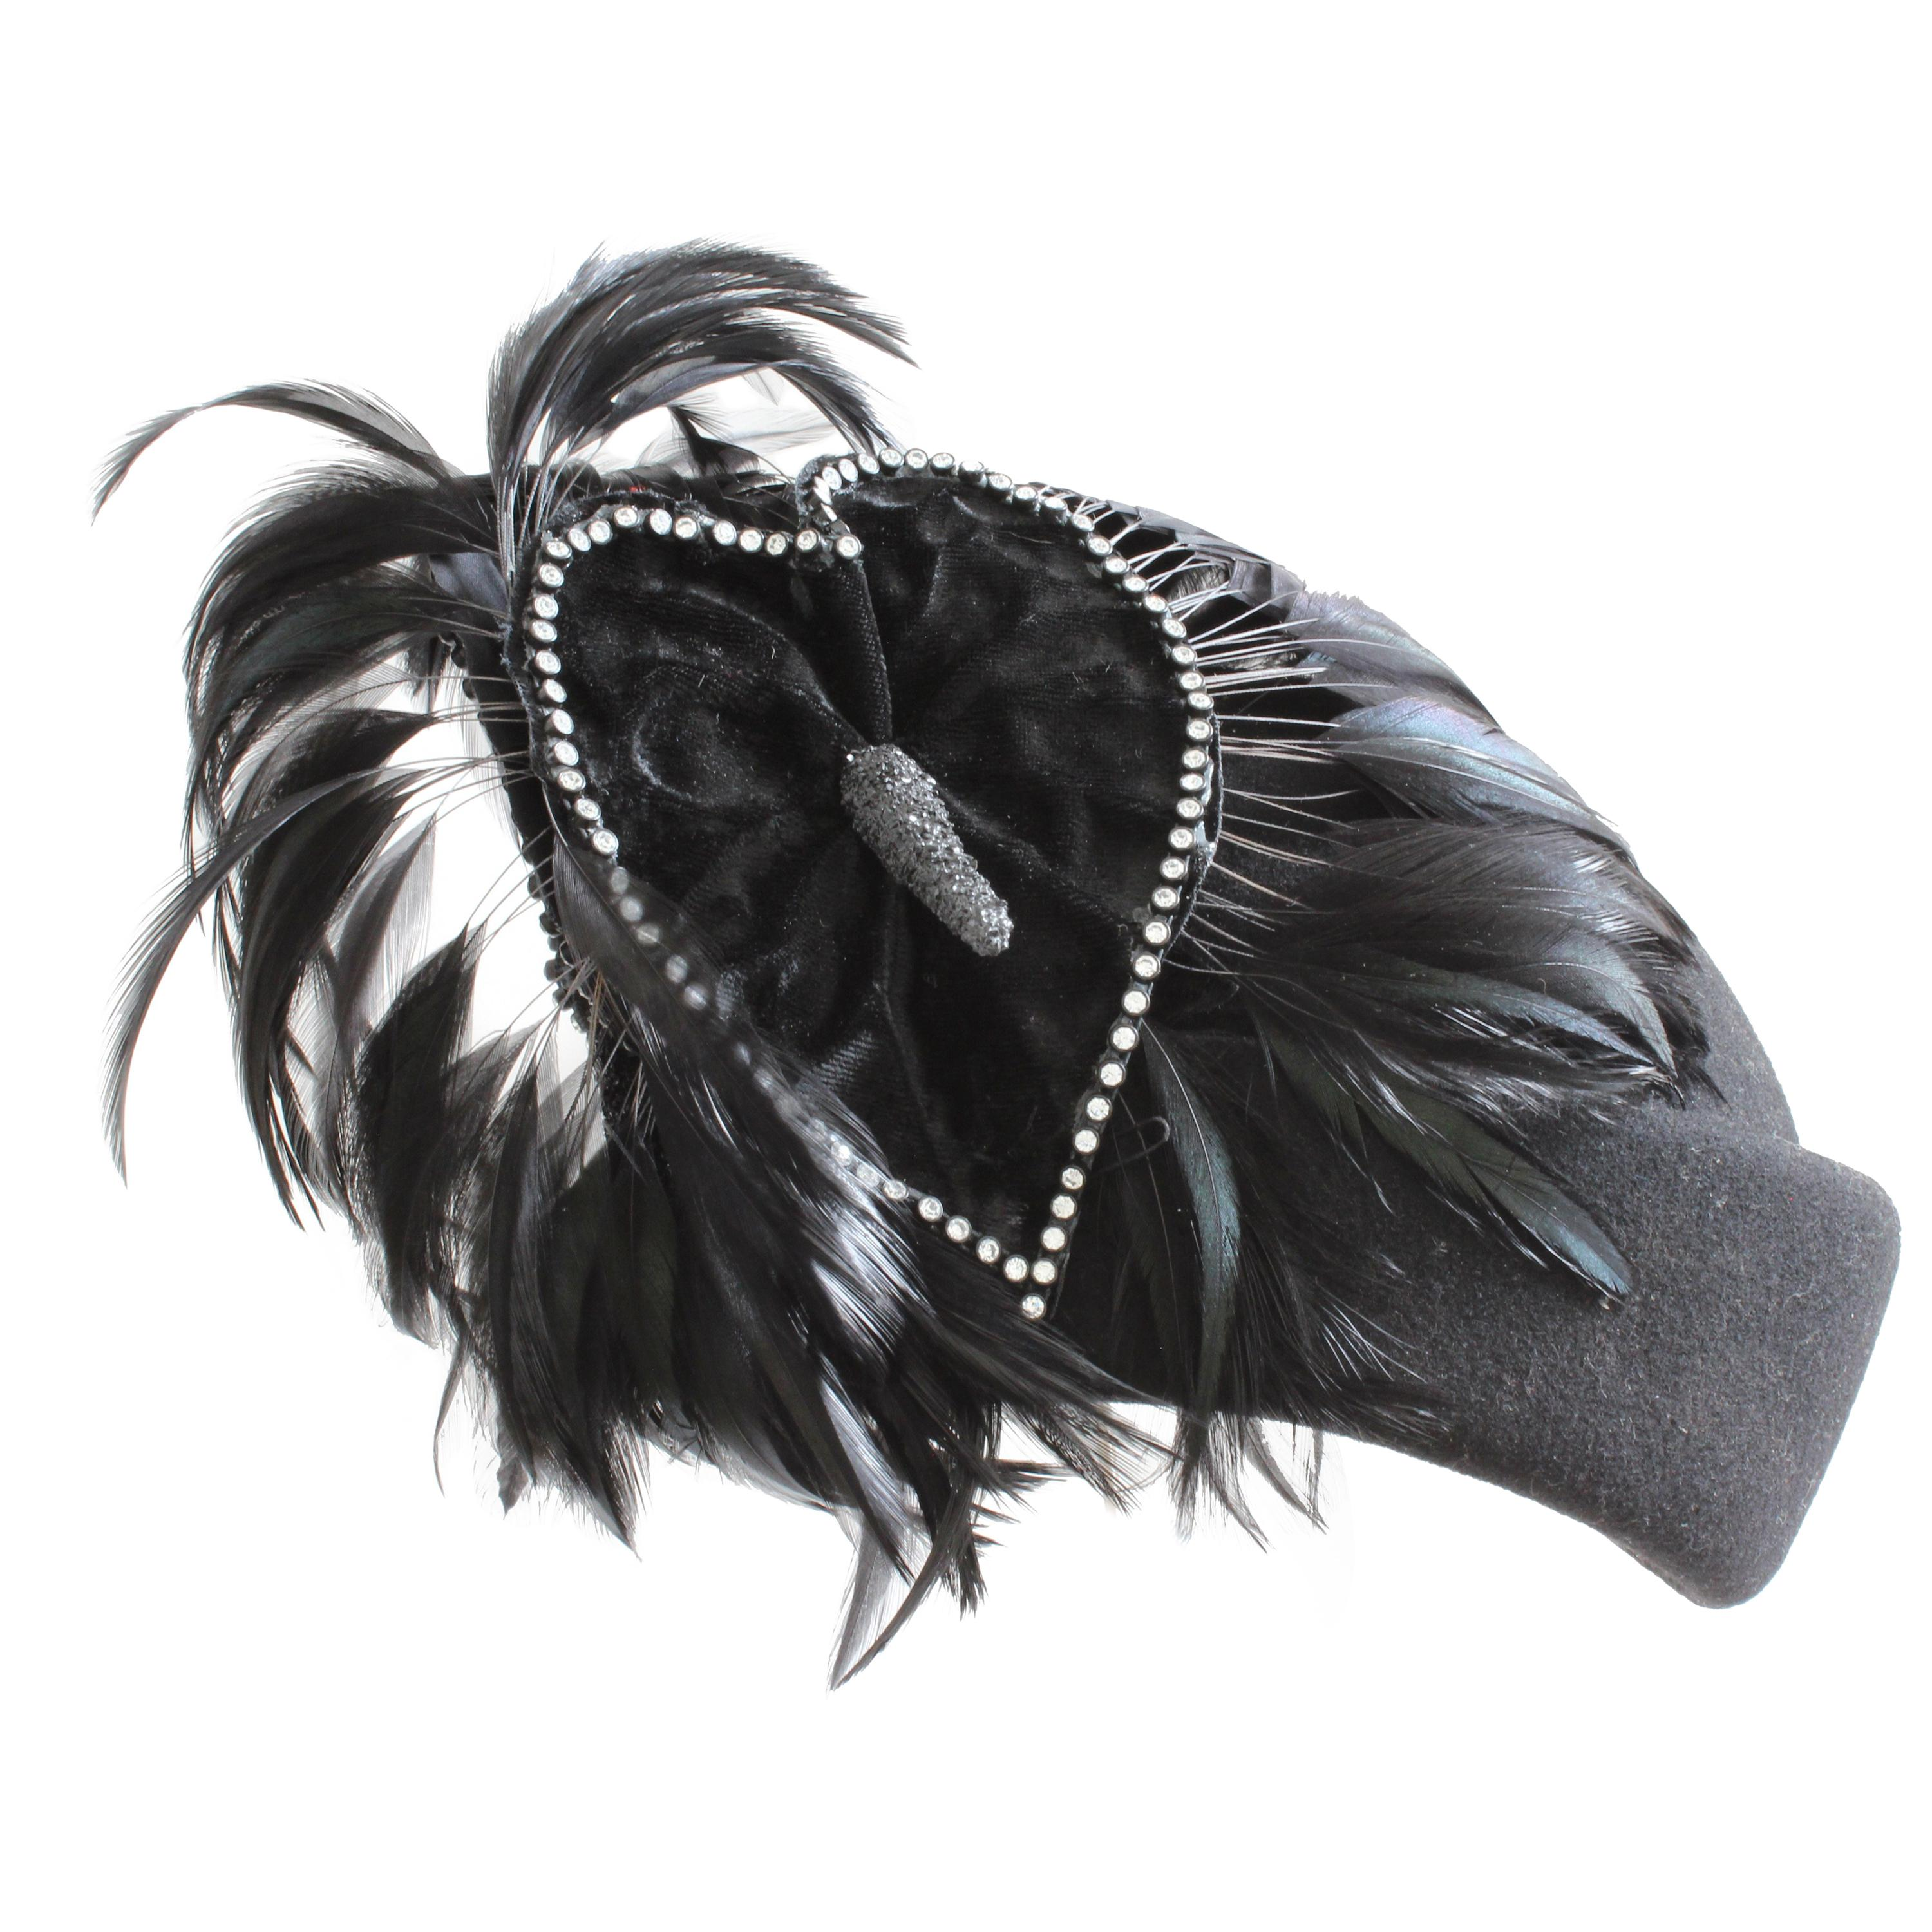 Jack McConnell Boutique Black Wool Clochette Hat with Feathers 1960s Bollman Hat